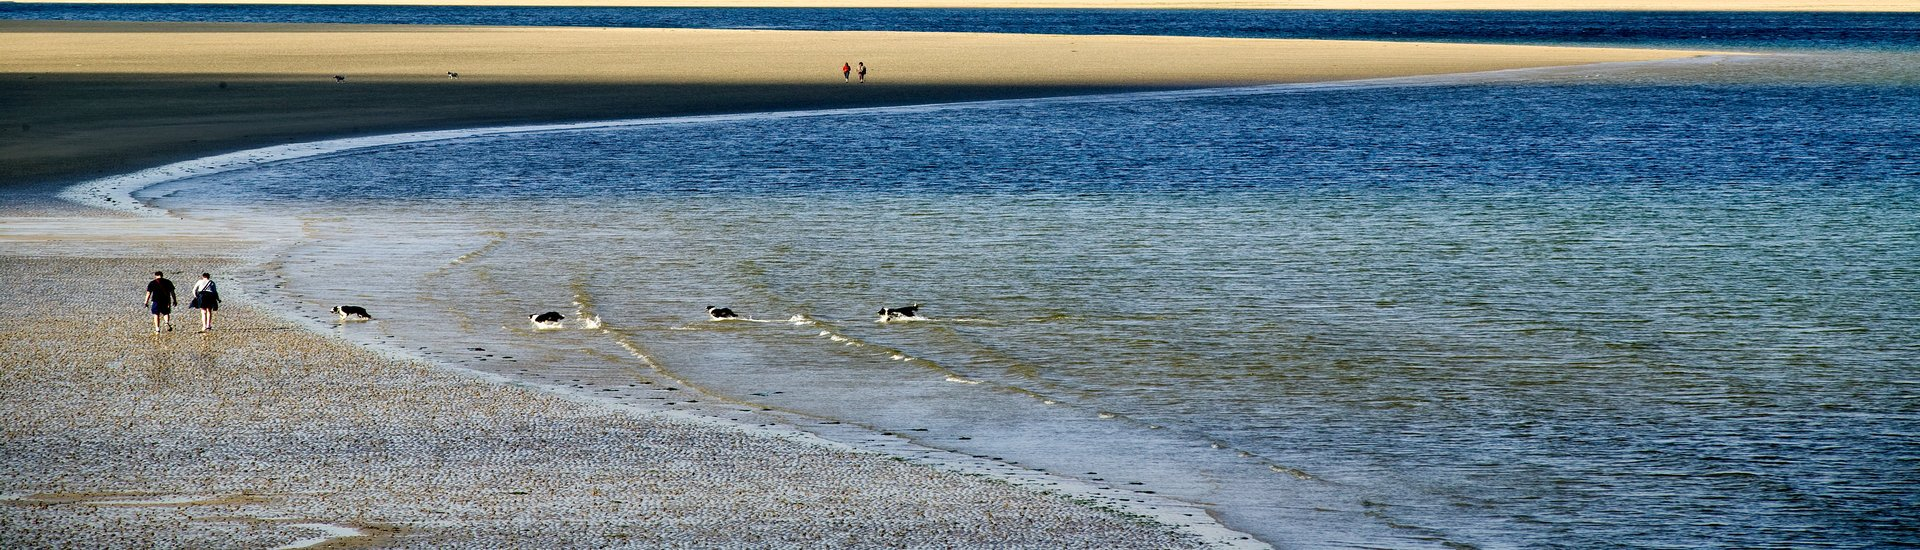 A couple walk on the beach along Daymer Bay, with their four dogs playing in the water.